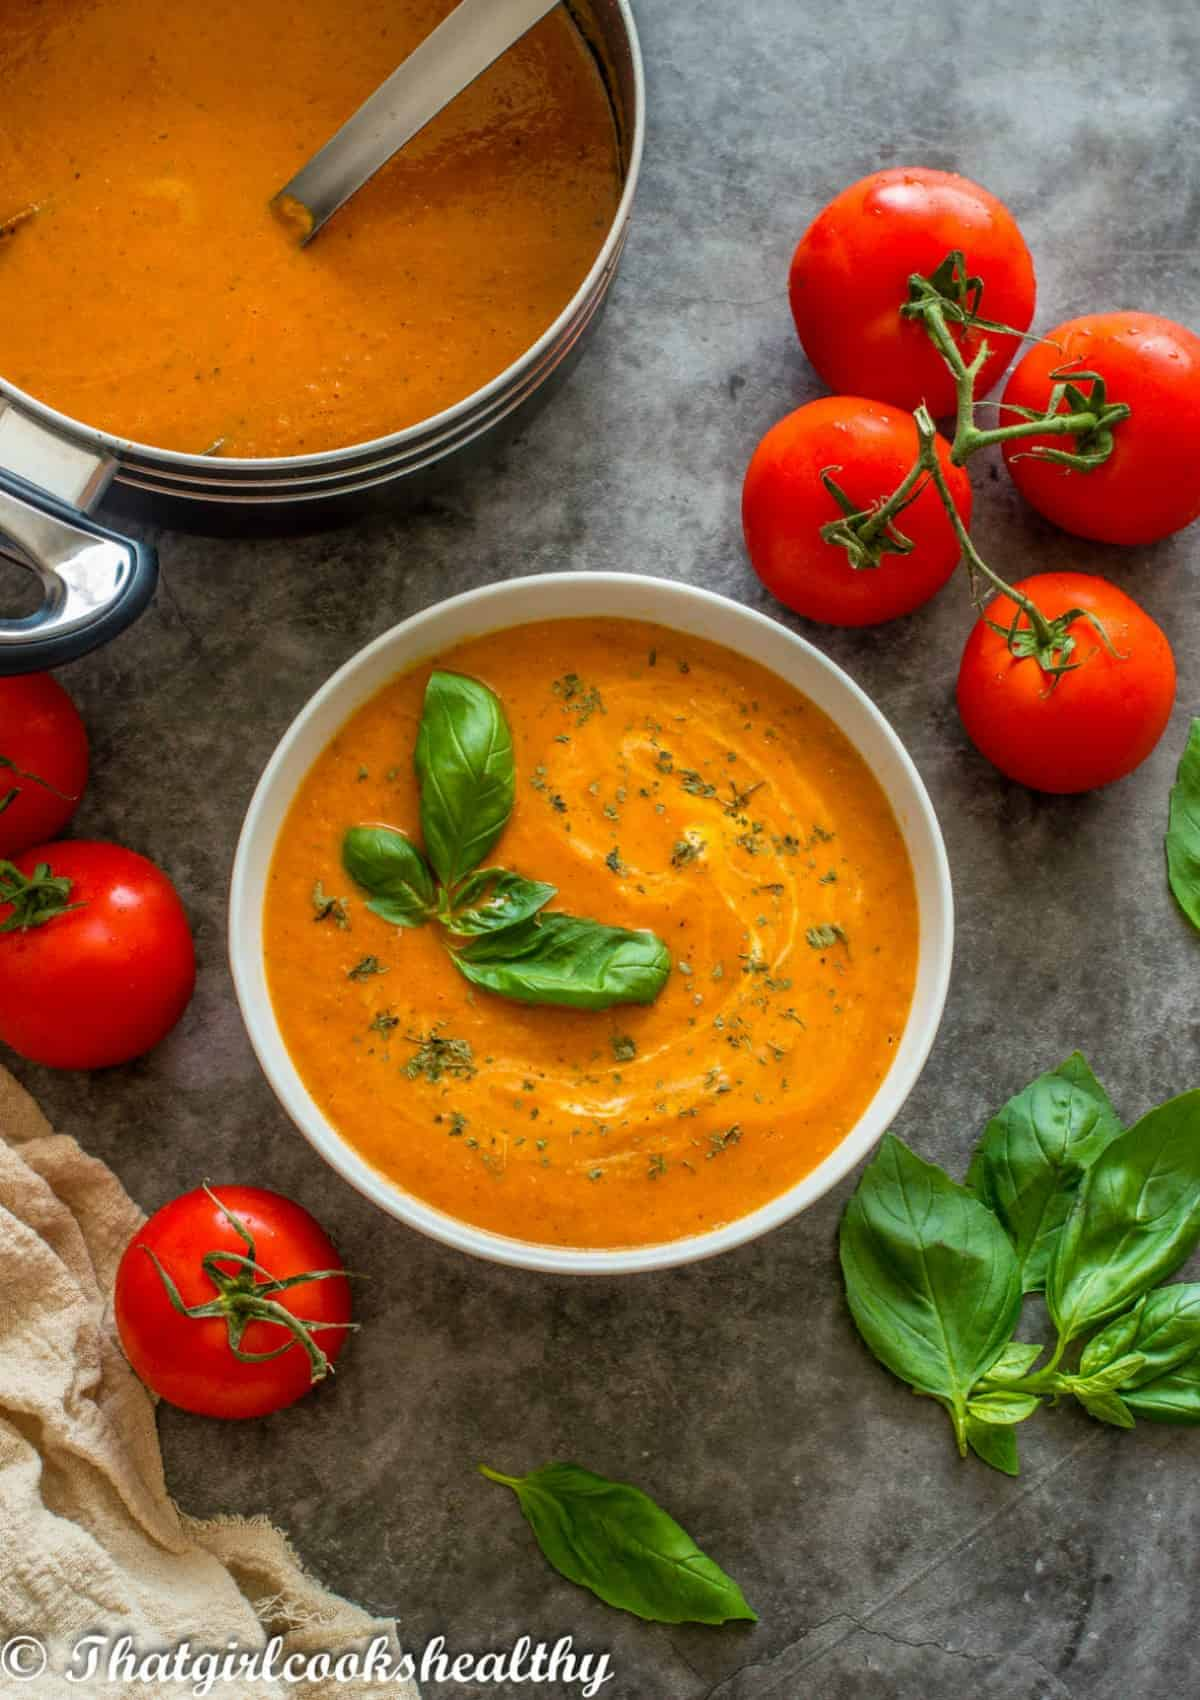 soup in a white bowl with tomatoes surrounding it